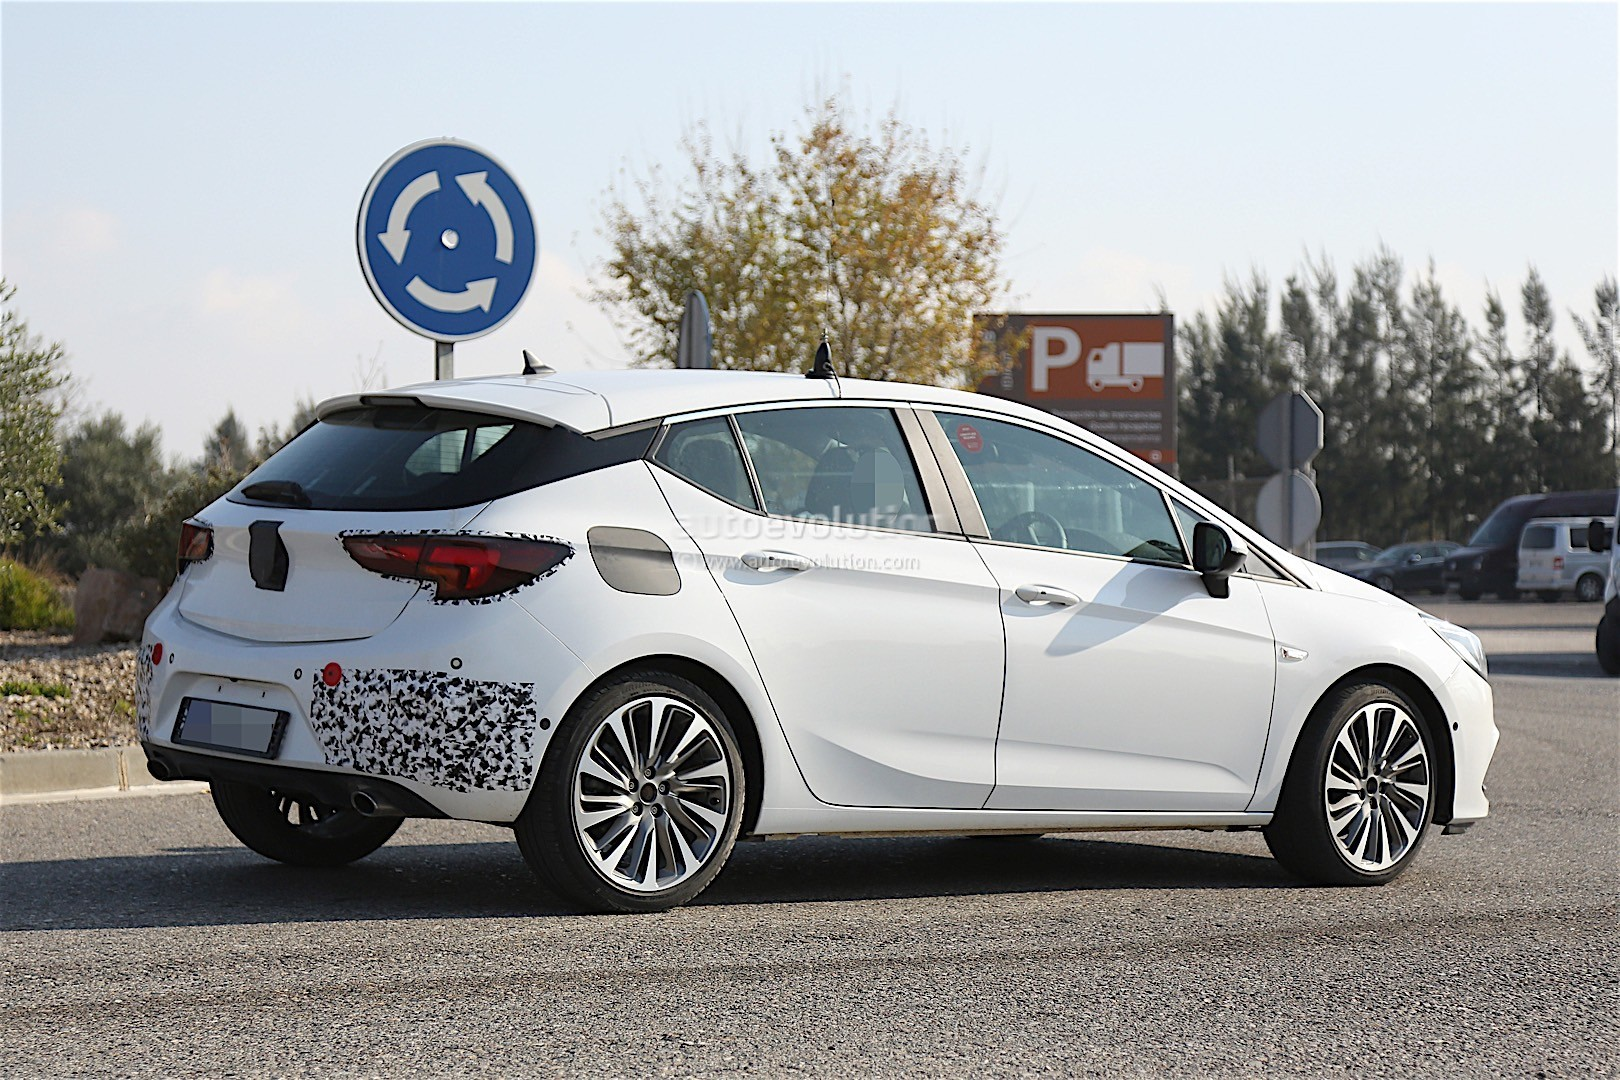 Astra K Gsi >> 2016 Opel Astra GSi Looks Ready to Take On the VW GTI in These Latest Spyshots - autoevolution